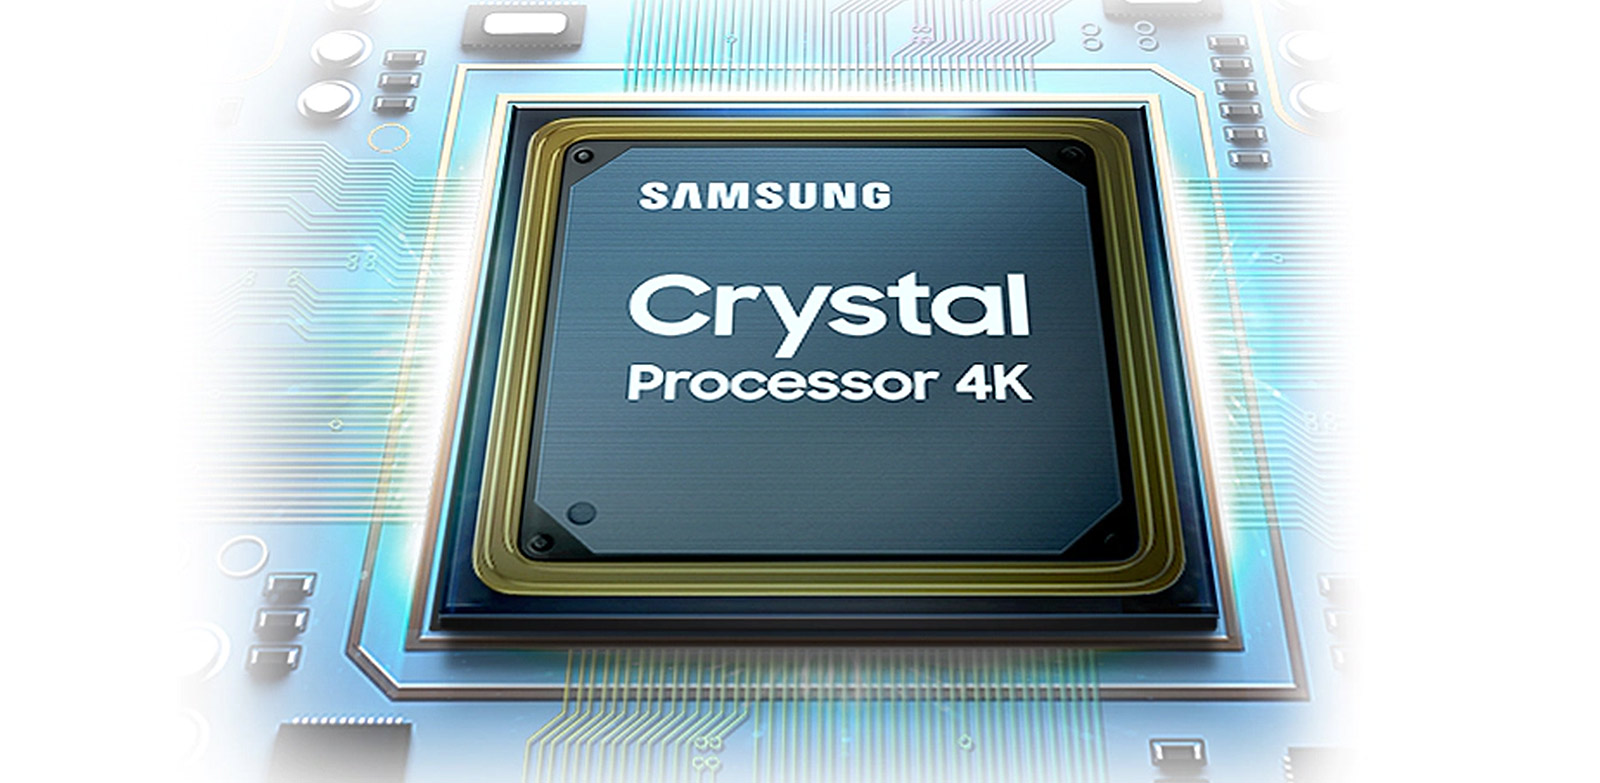 Feel lifelike shade of color as intended in powerful 4K Crystal Processor 4K-ExtensionImages_appliance_Modular